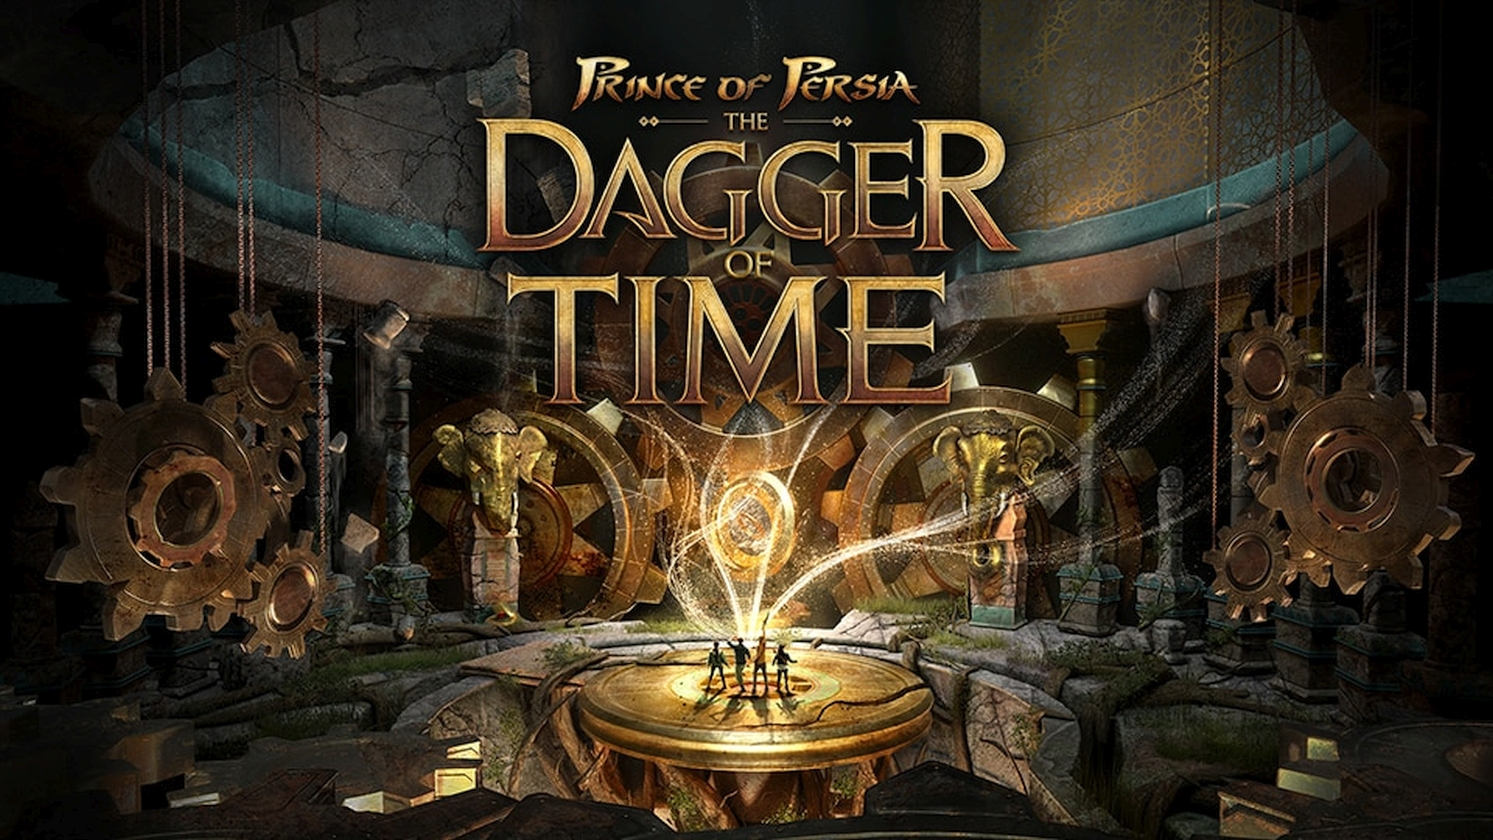 Ubisoft Releases Trailer For Vr Escape Room Experience Prince Of Persia The Dagger Of Time Happy Gamer